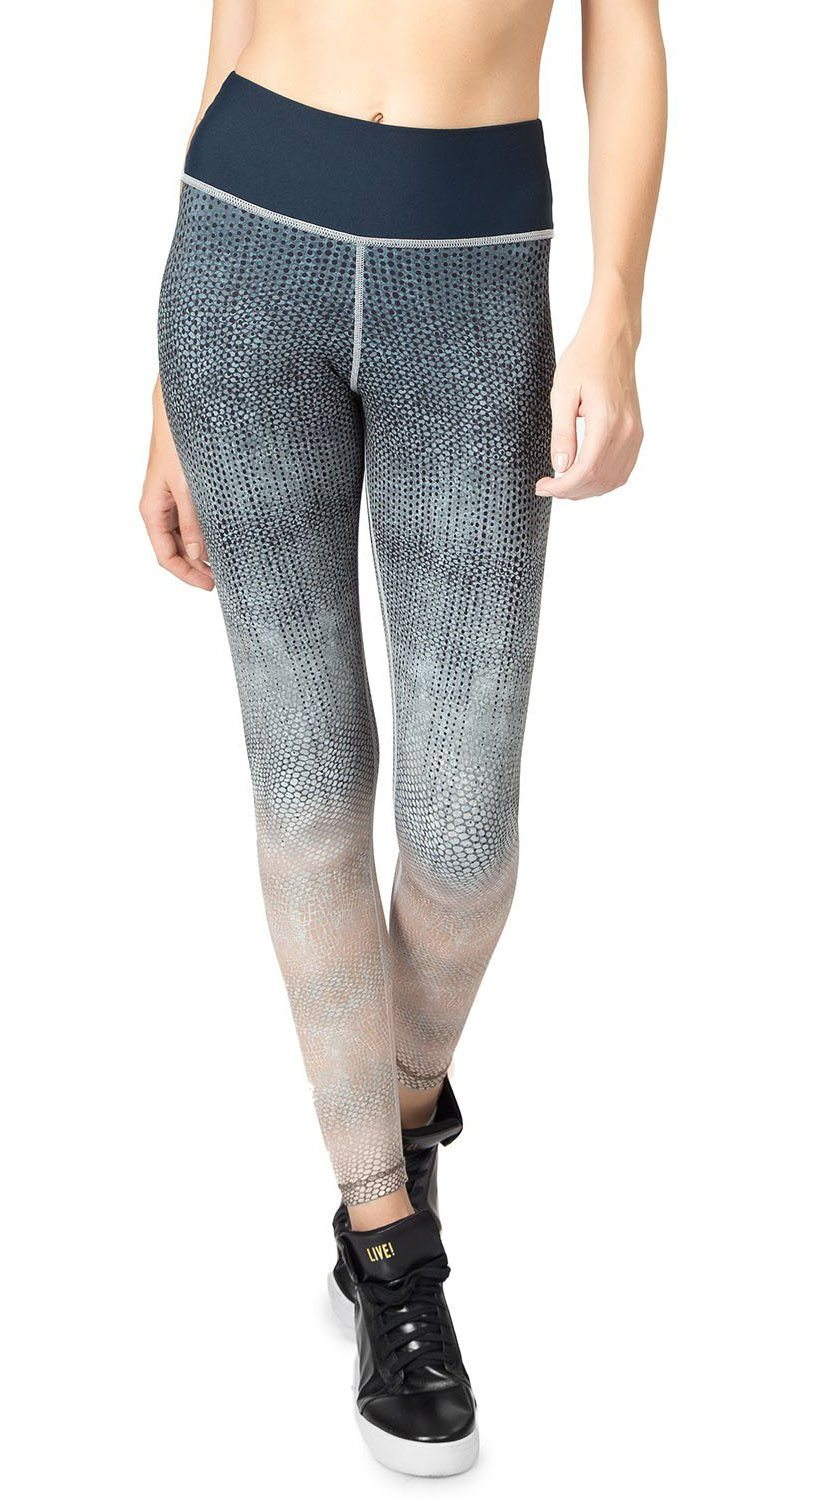 Fake Jeans Legging - Power Up Reversible Legging